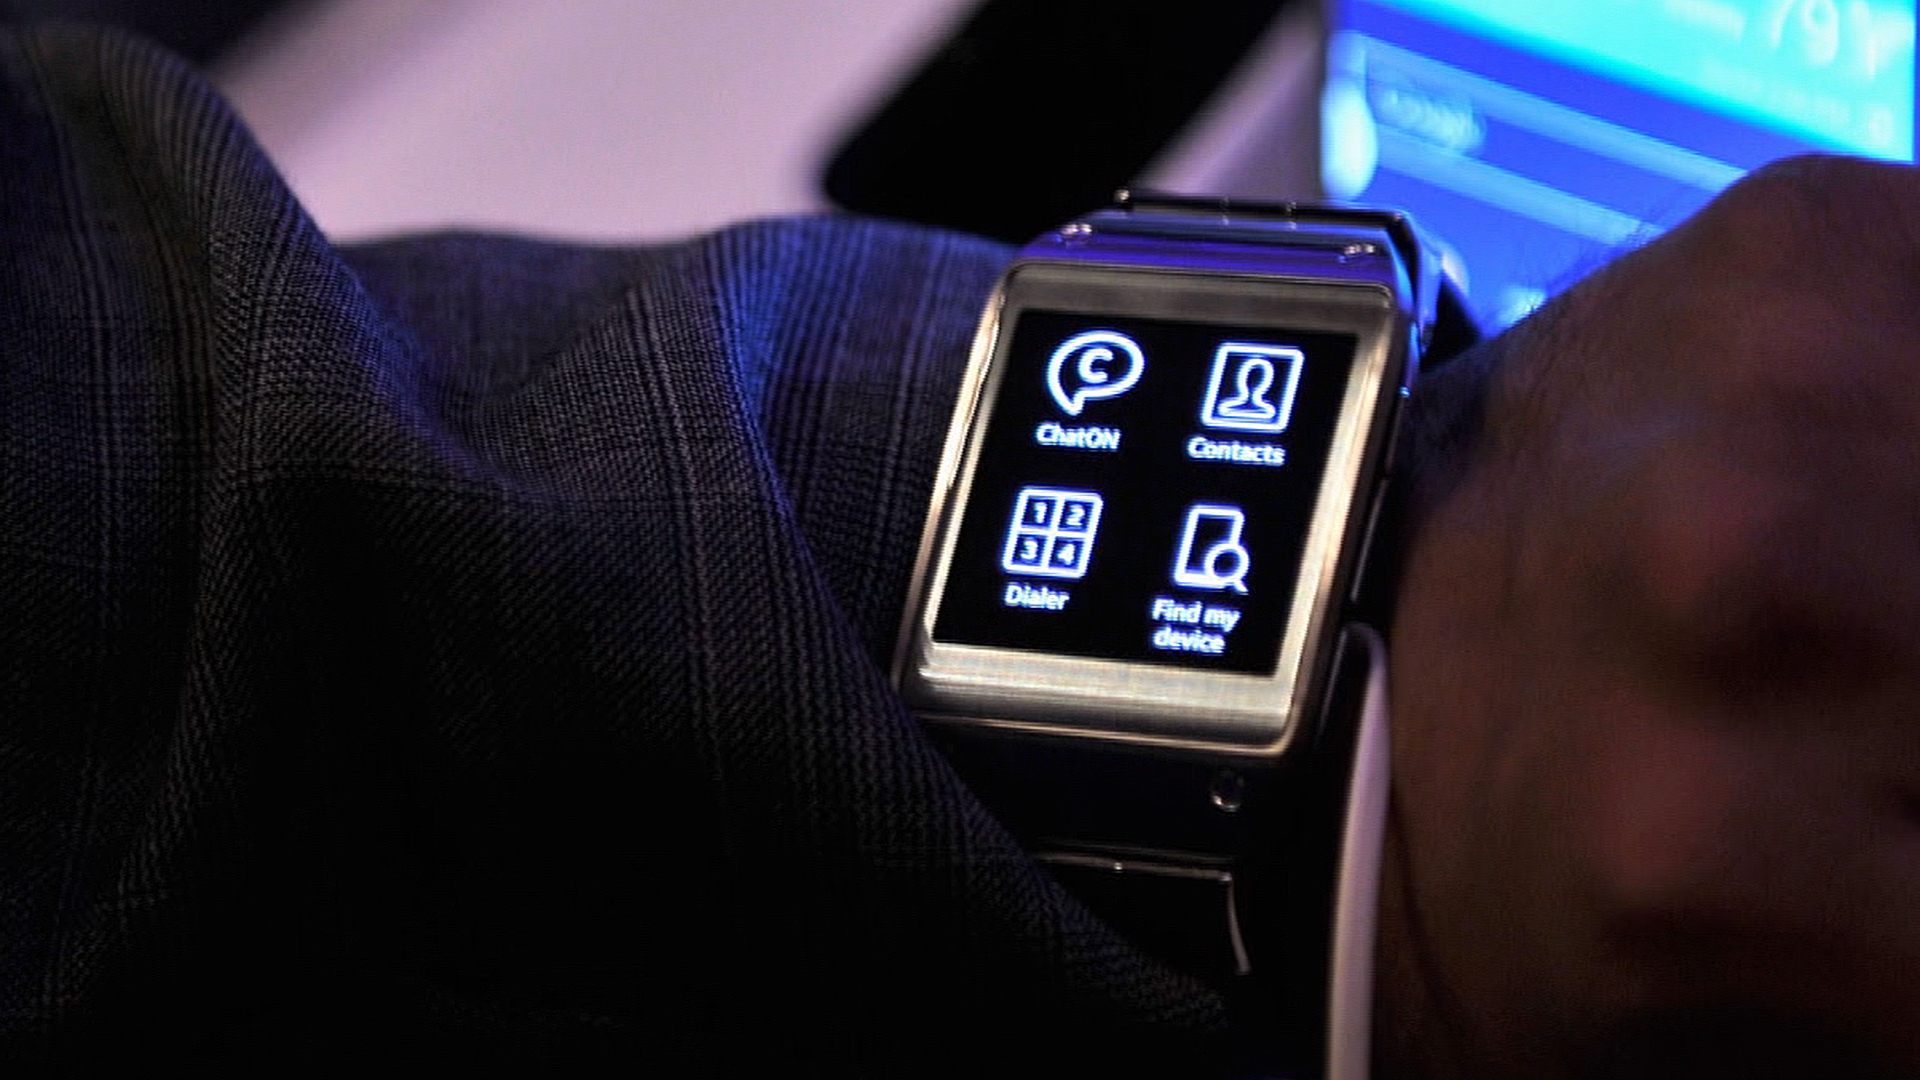 Samsung's Galaxy Gear marks official start to smartwatch war